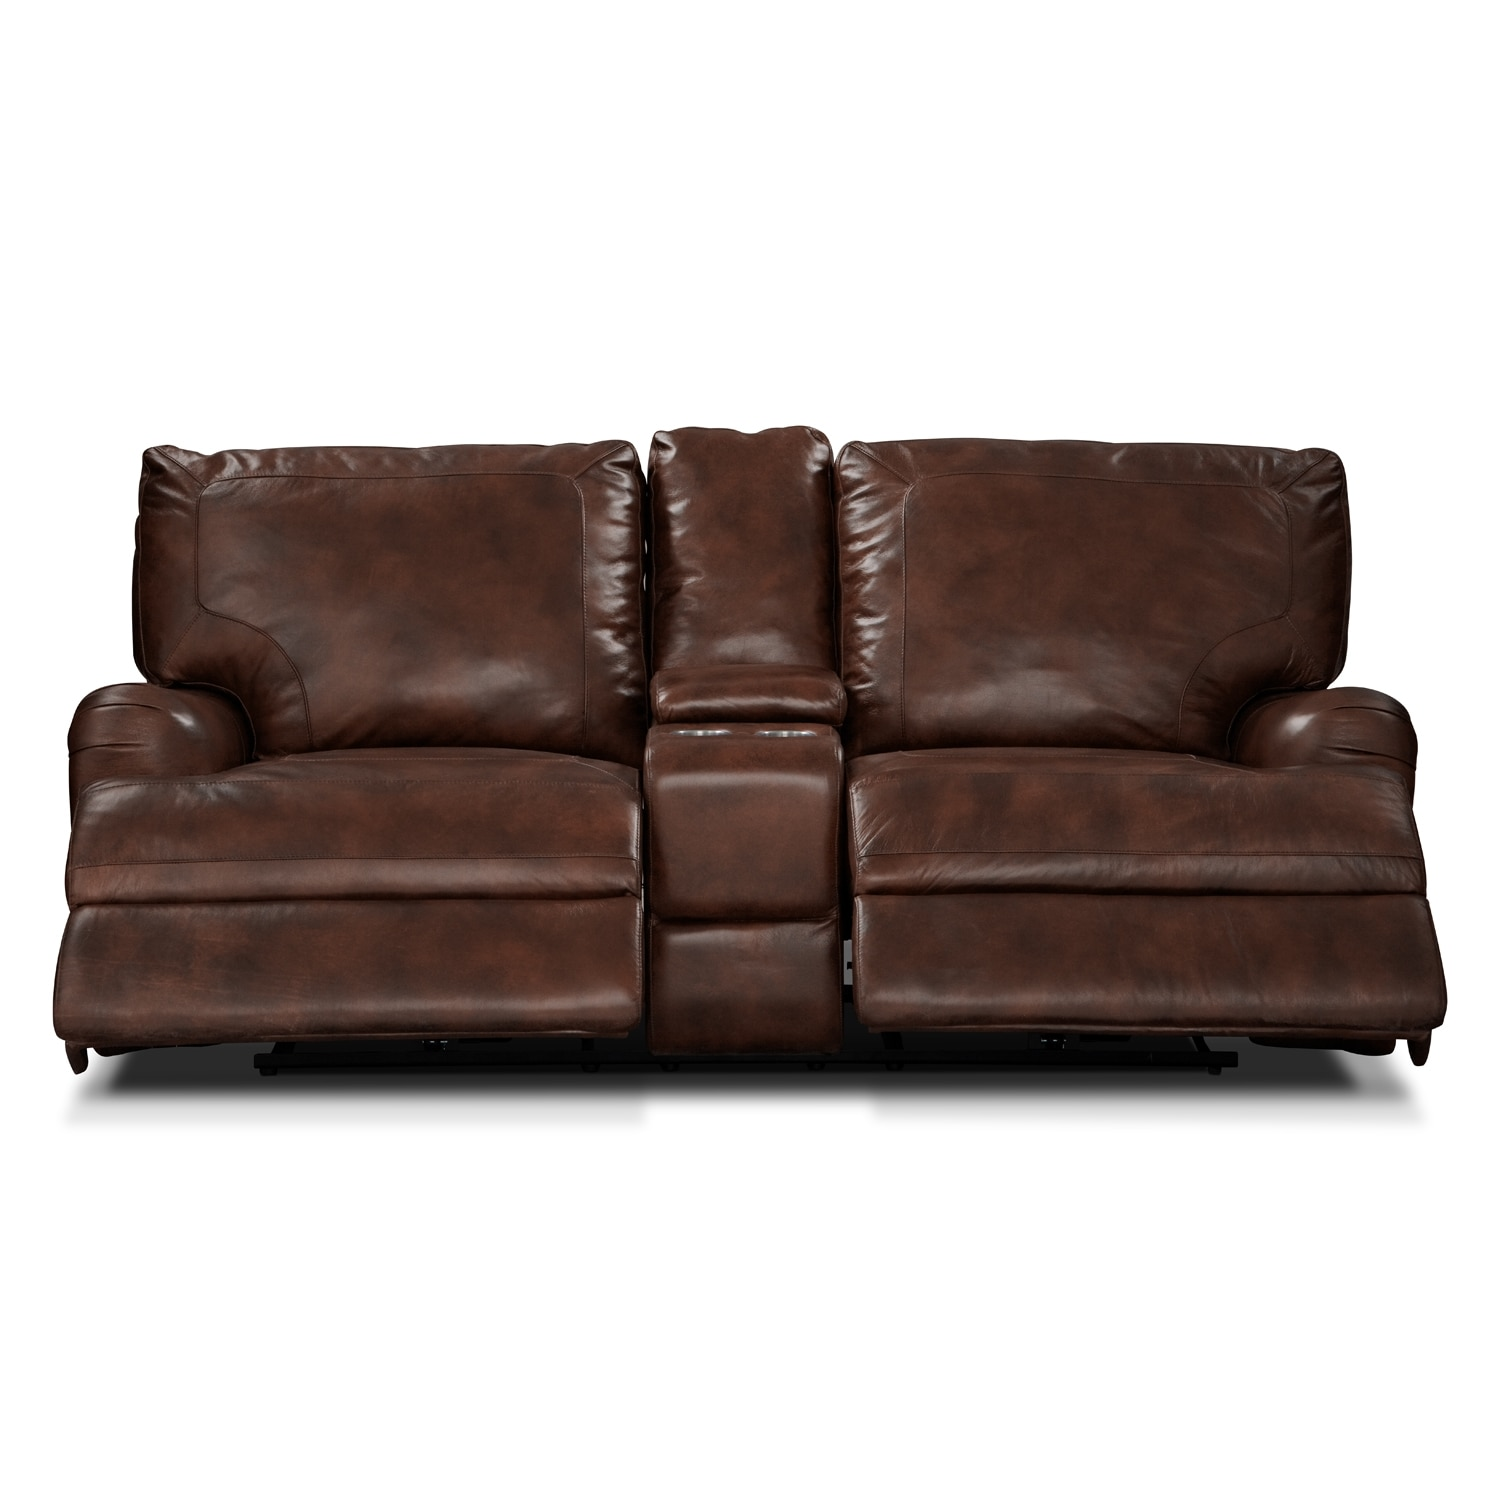 Disassemble recliner sofa 20 images for Furniture that can be disassembled